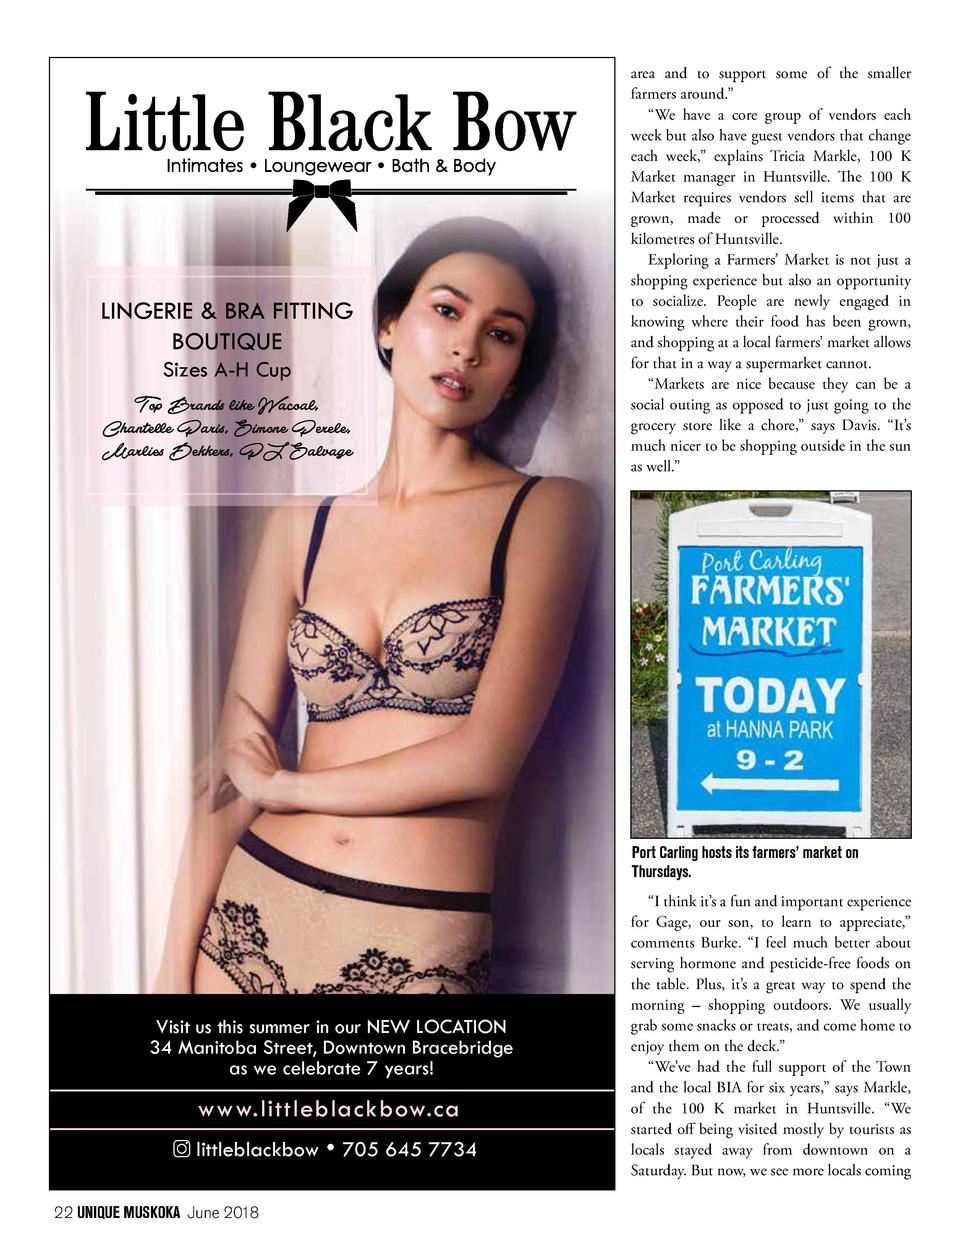 LINGERIE   BRA FITTING BOUTIQUE Sizes A-H Cup  Top Brands like Wacoal, Chantelle Paris, Simone Perele, Marlies Dekkers, PJ...